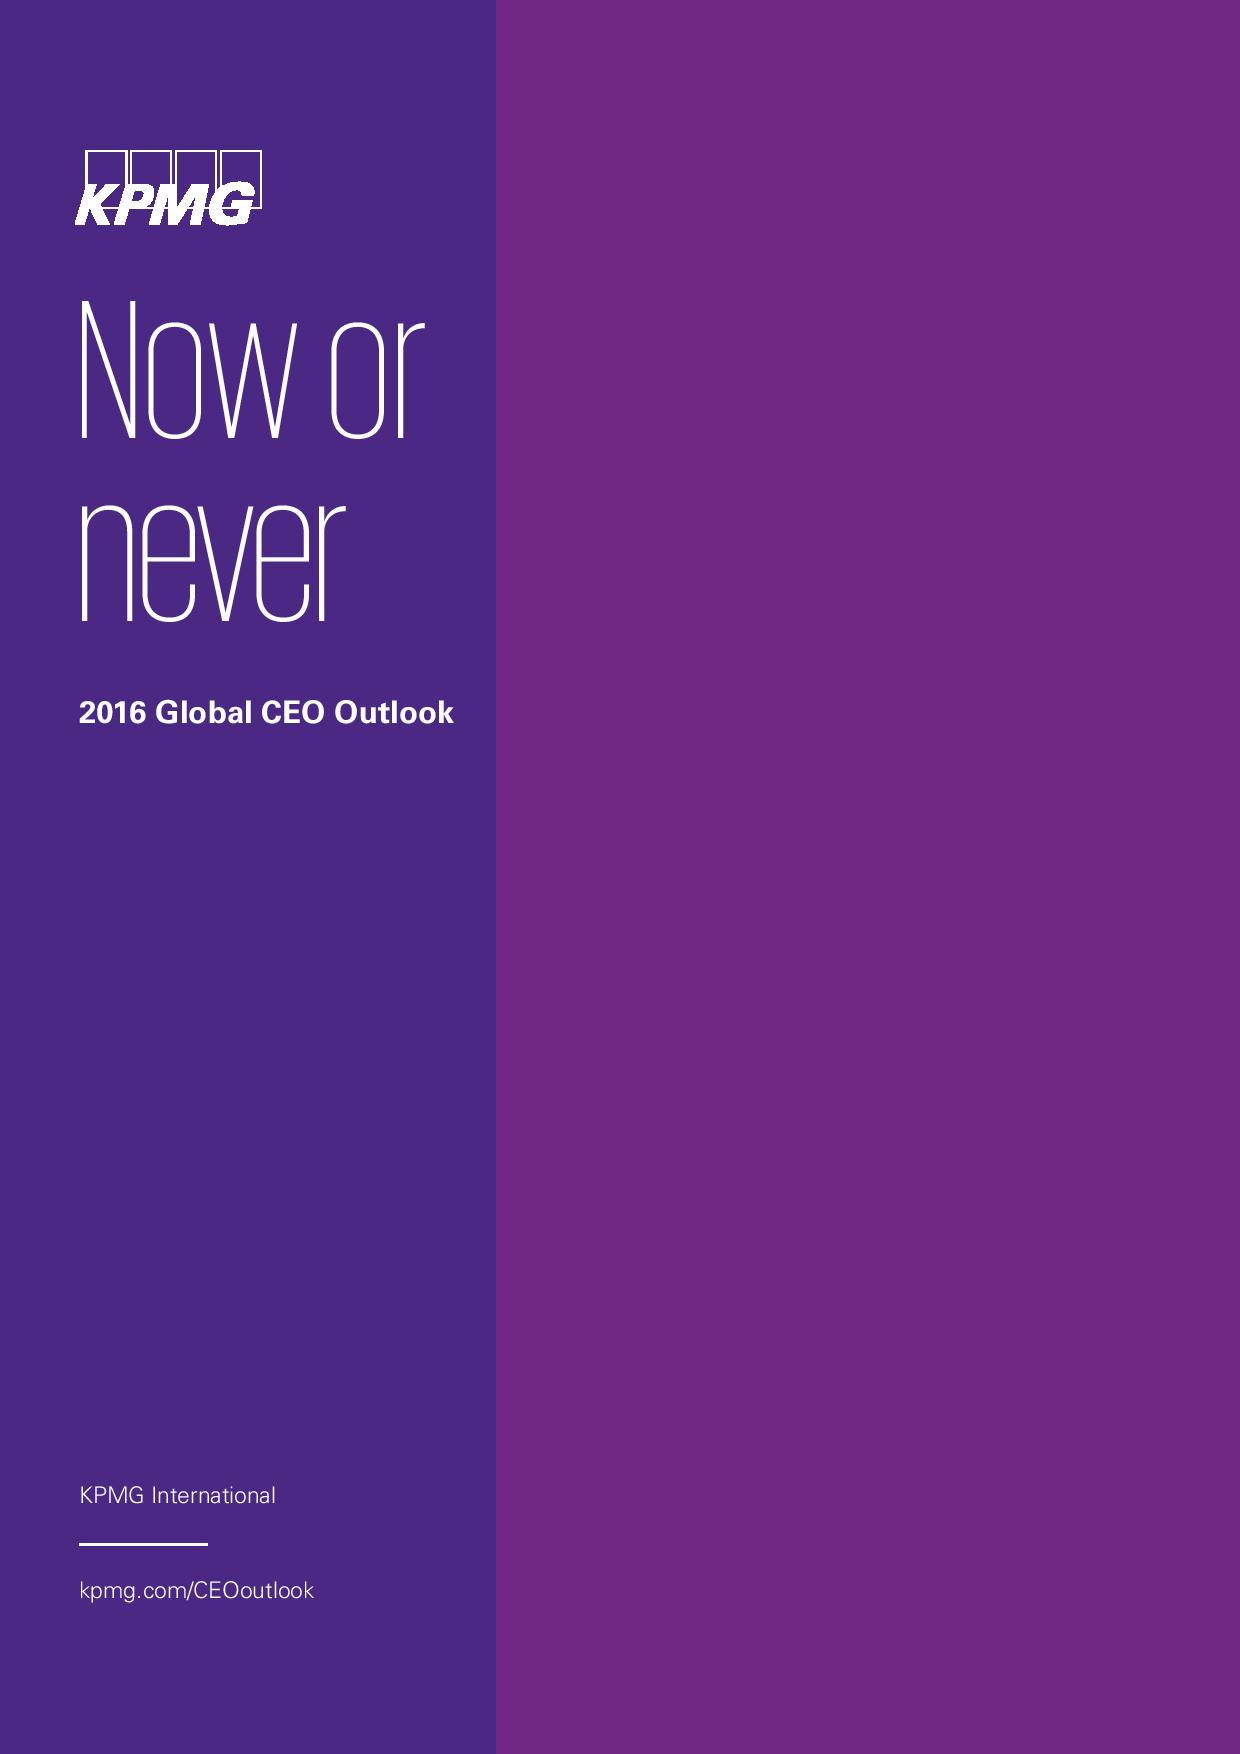 Now or Never: 2016 Global CEO Outlook